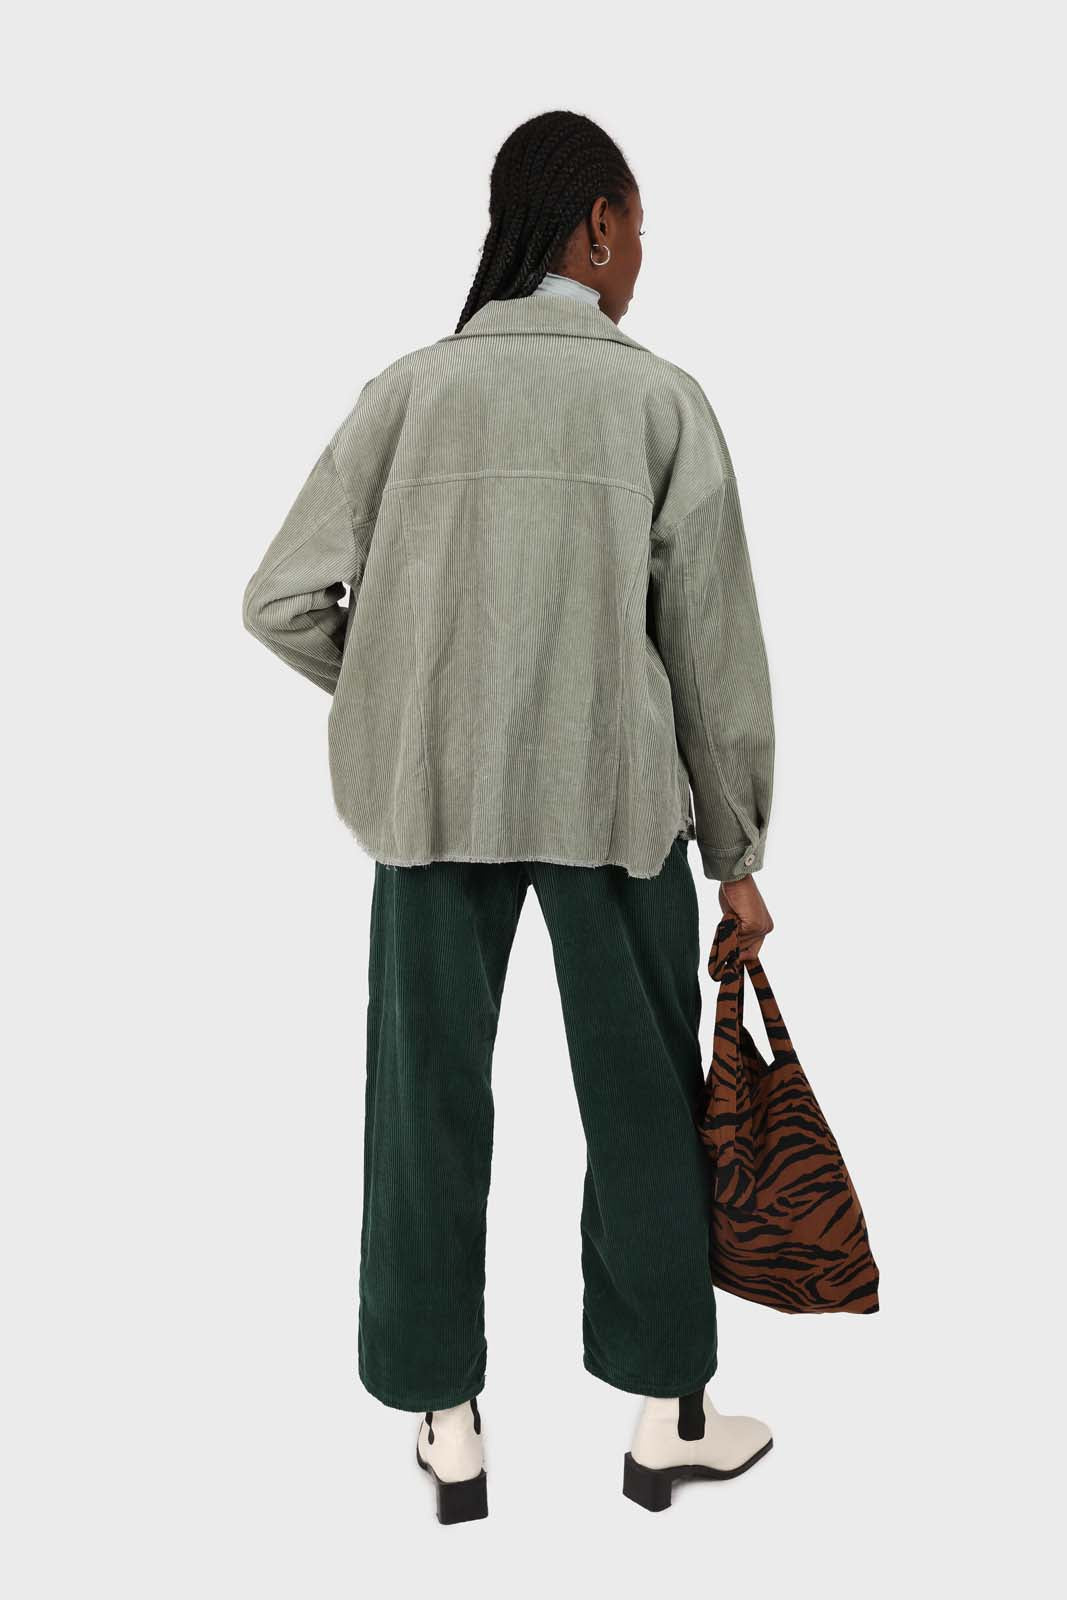 Green corduroy side button loose fit trousers13